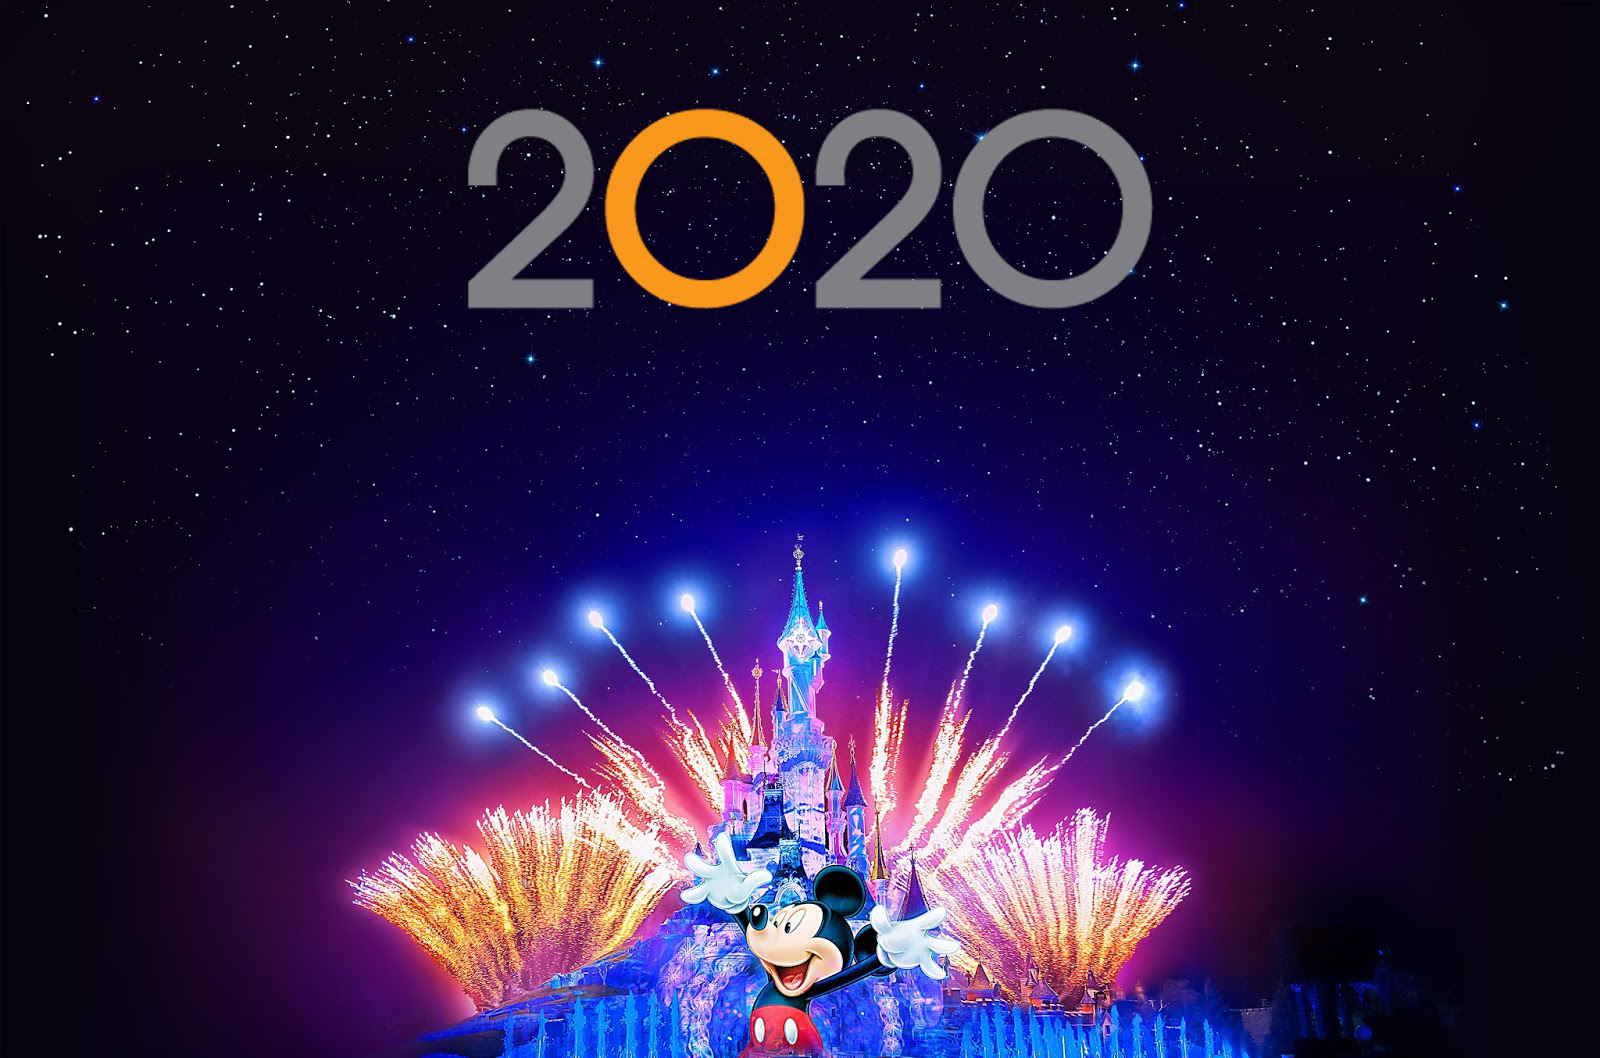 tmp_15922-DisneyIlluminationsMickey-337695009